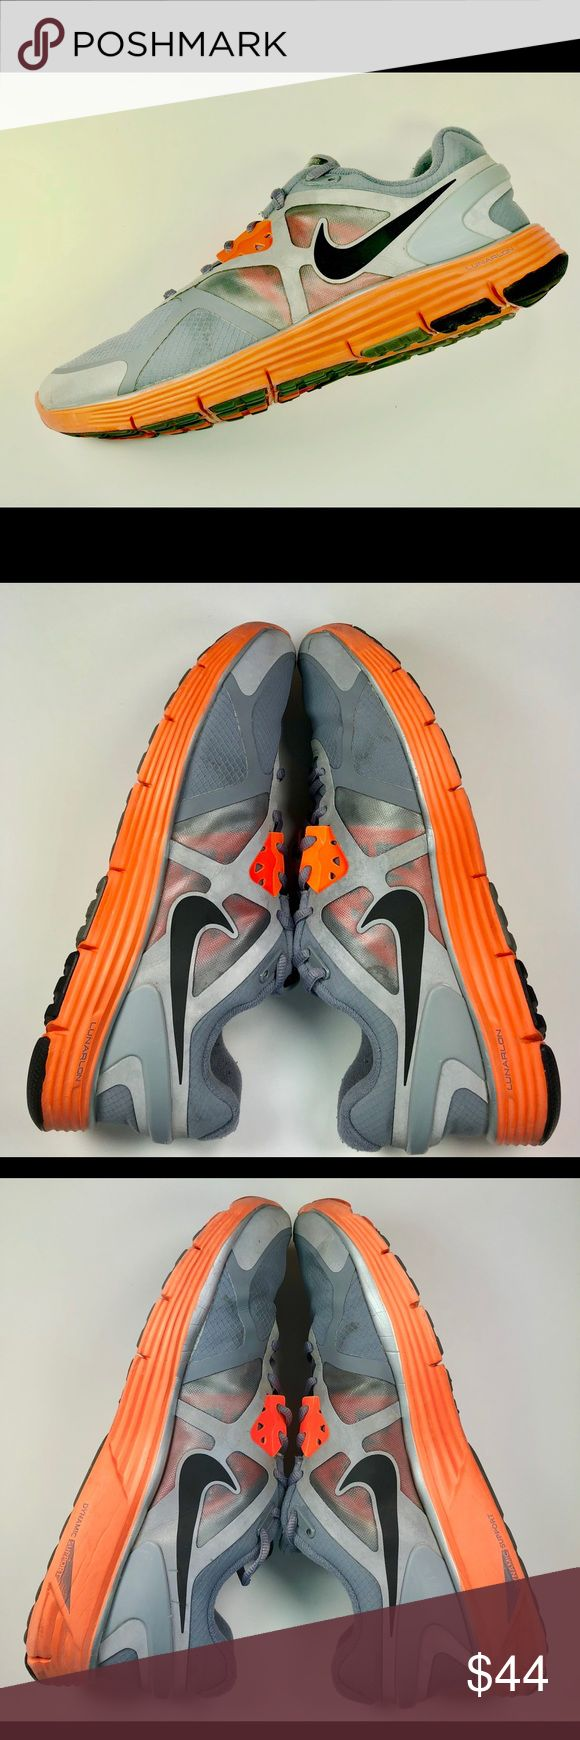 NIKE LUNARGLIDE 3 Women's Running Shoes SZ 9,5 H2O Very good condition see pictures for more details Nike Shoes Athletic Shoes